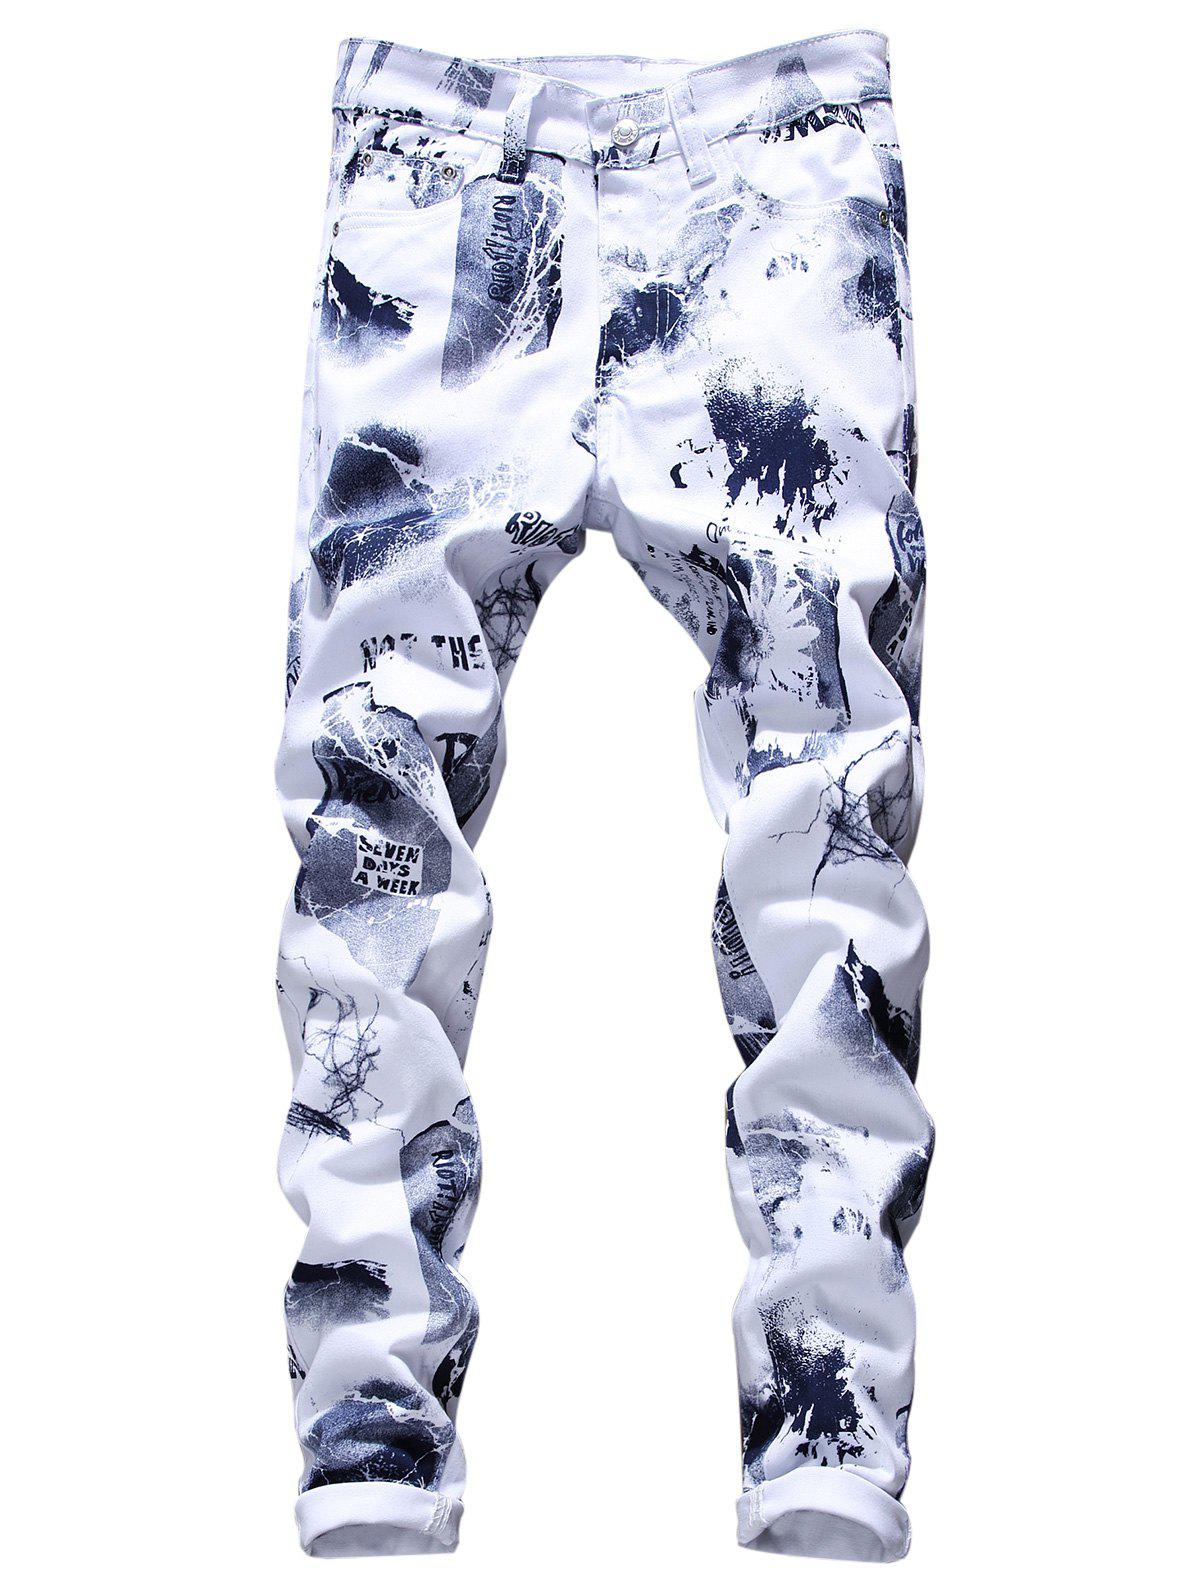 Graphic Tie Dye Print Skinny Jeans - WHITE 34